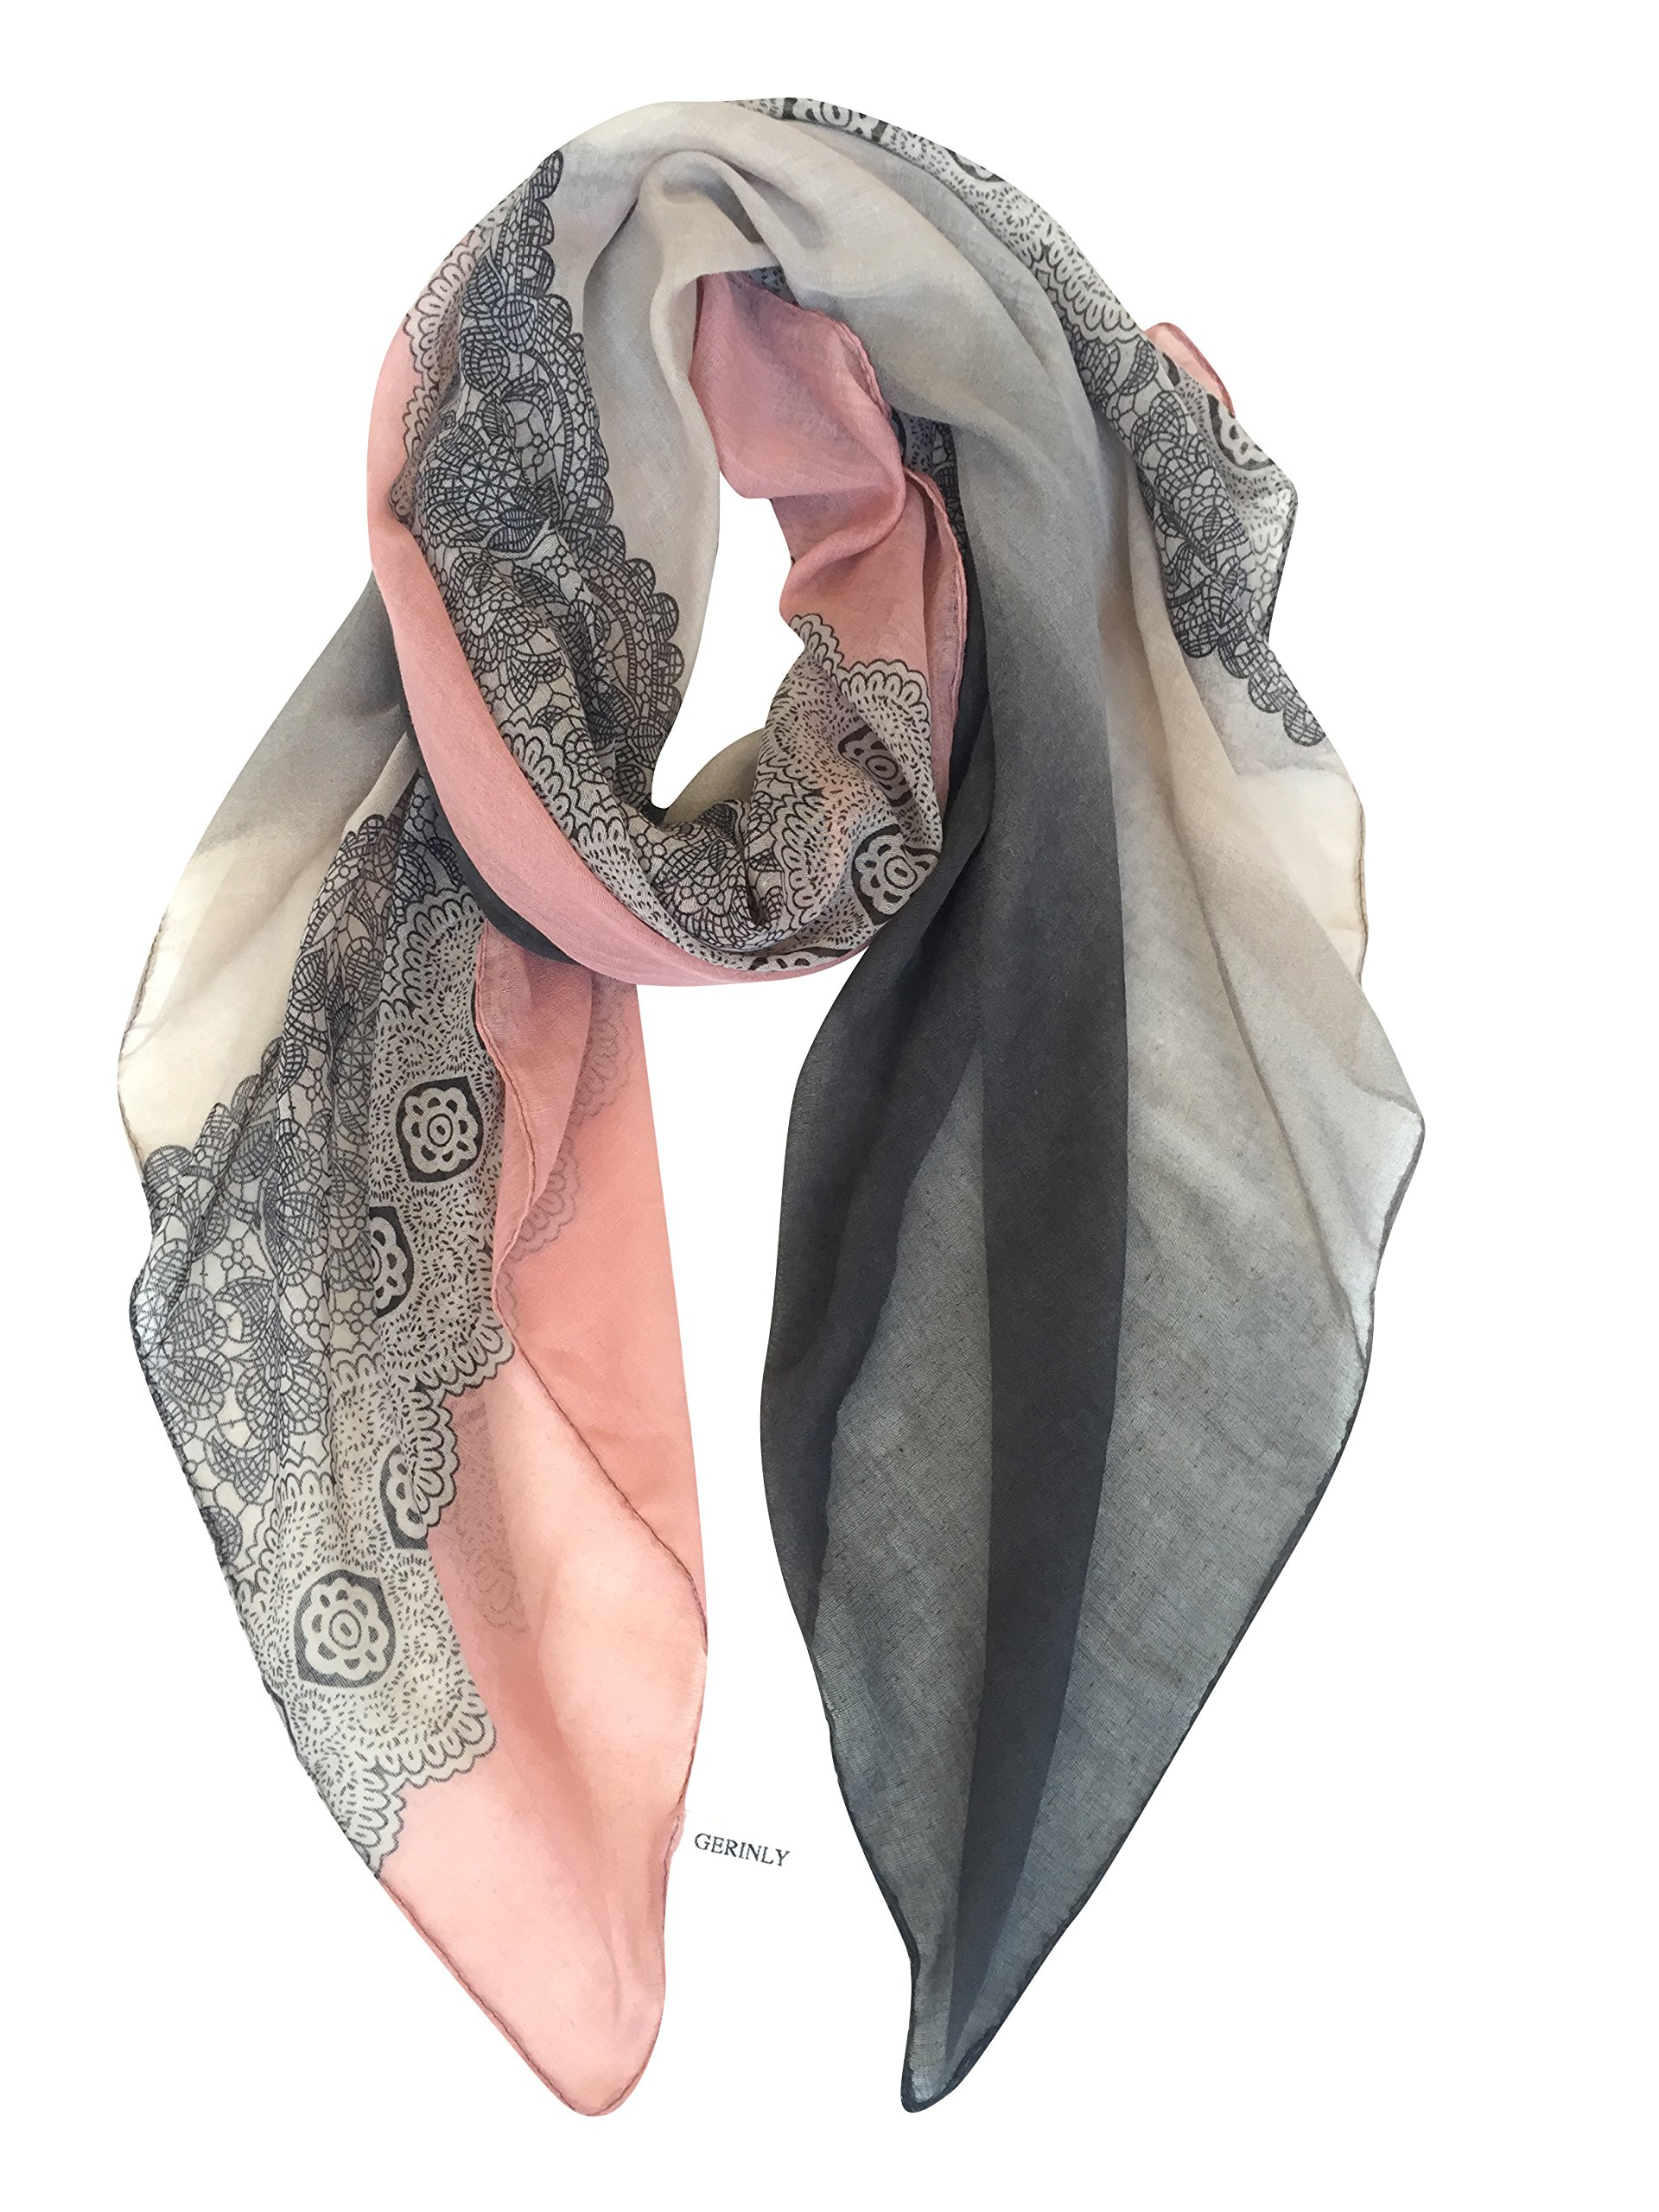 GERINLY Cozy Lightweight Scarves: Fashion Lace Print Shawl Wrap For Women (DarkGrey+LightPink)